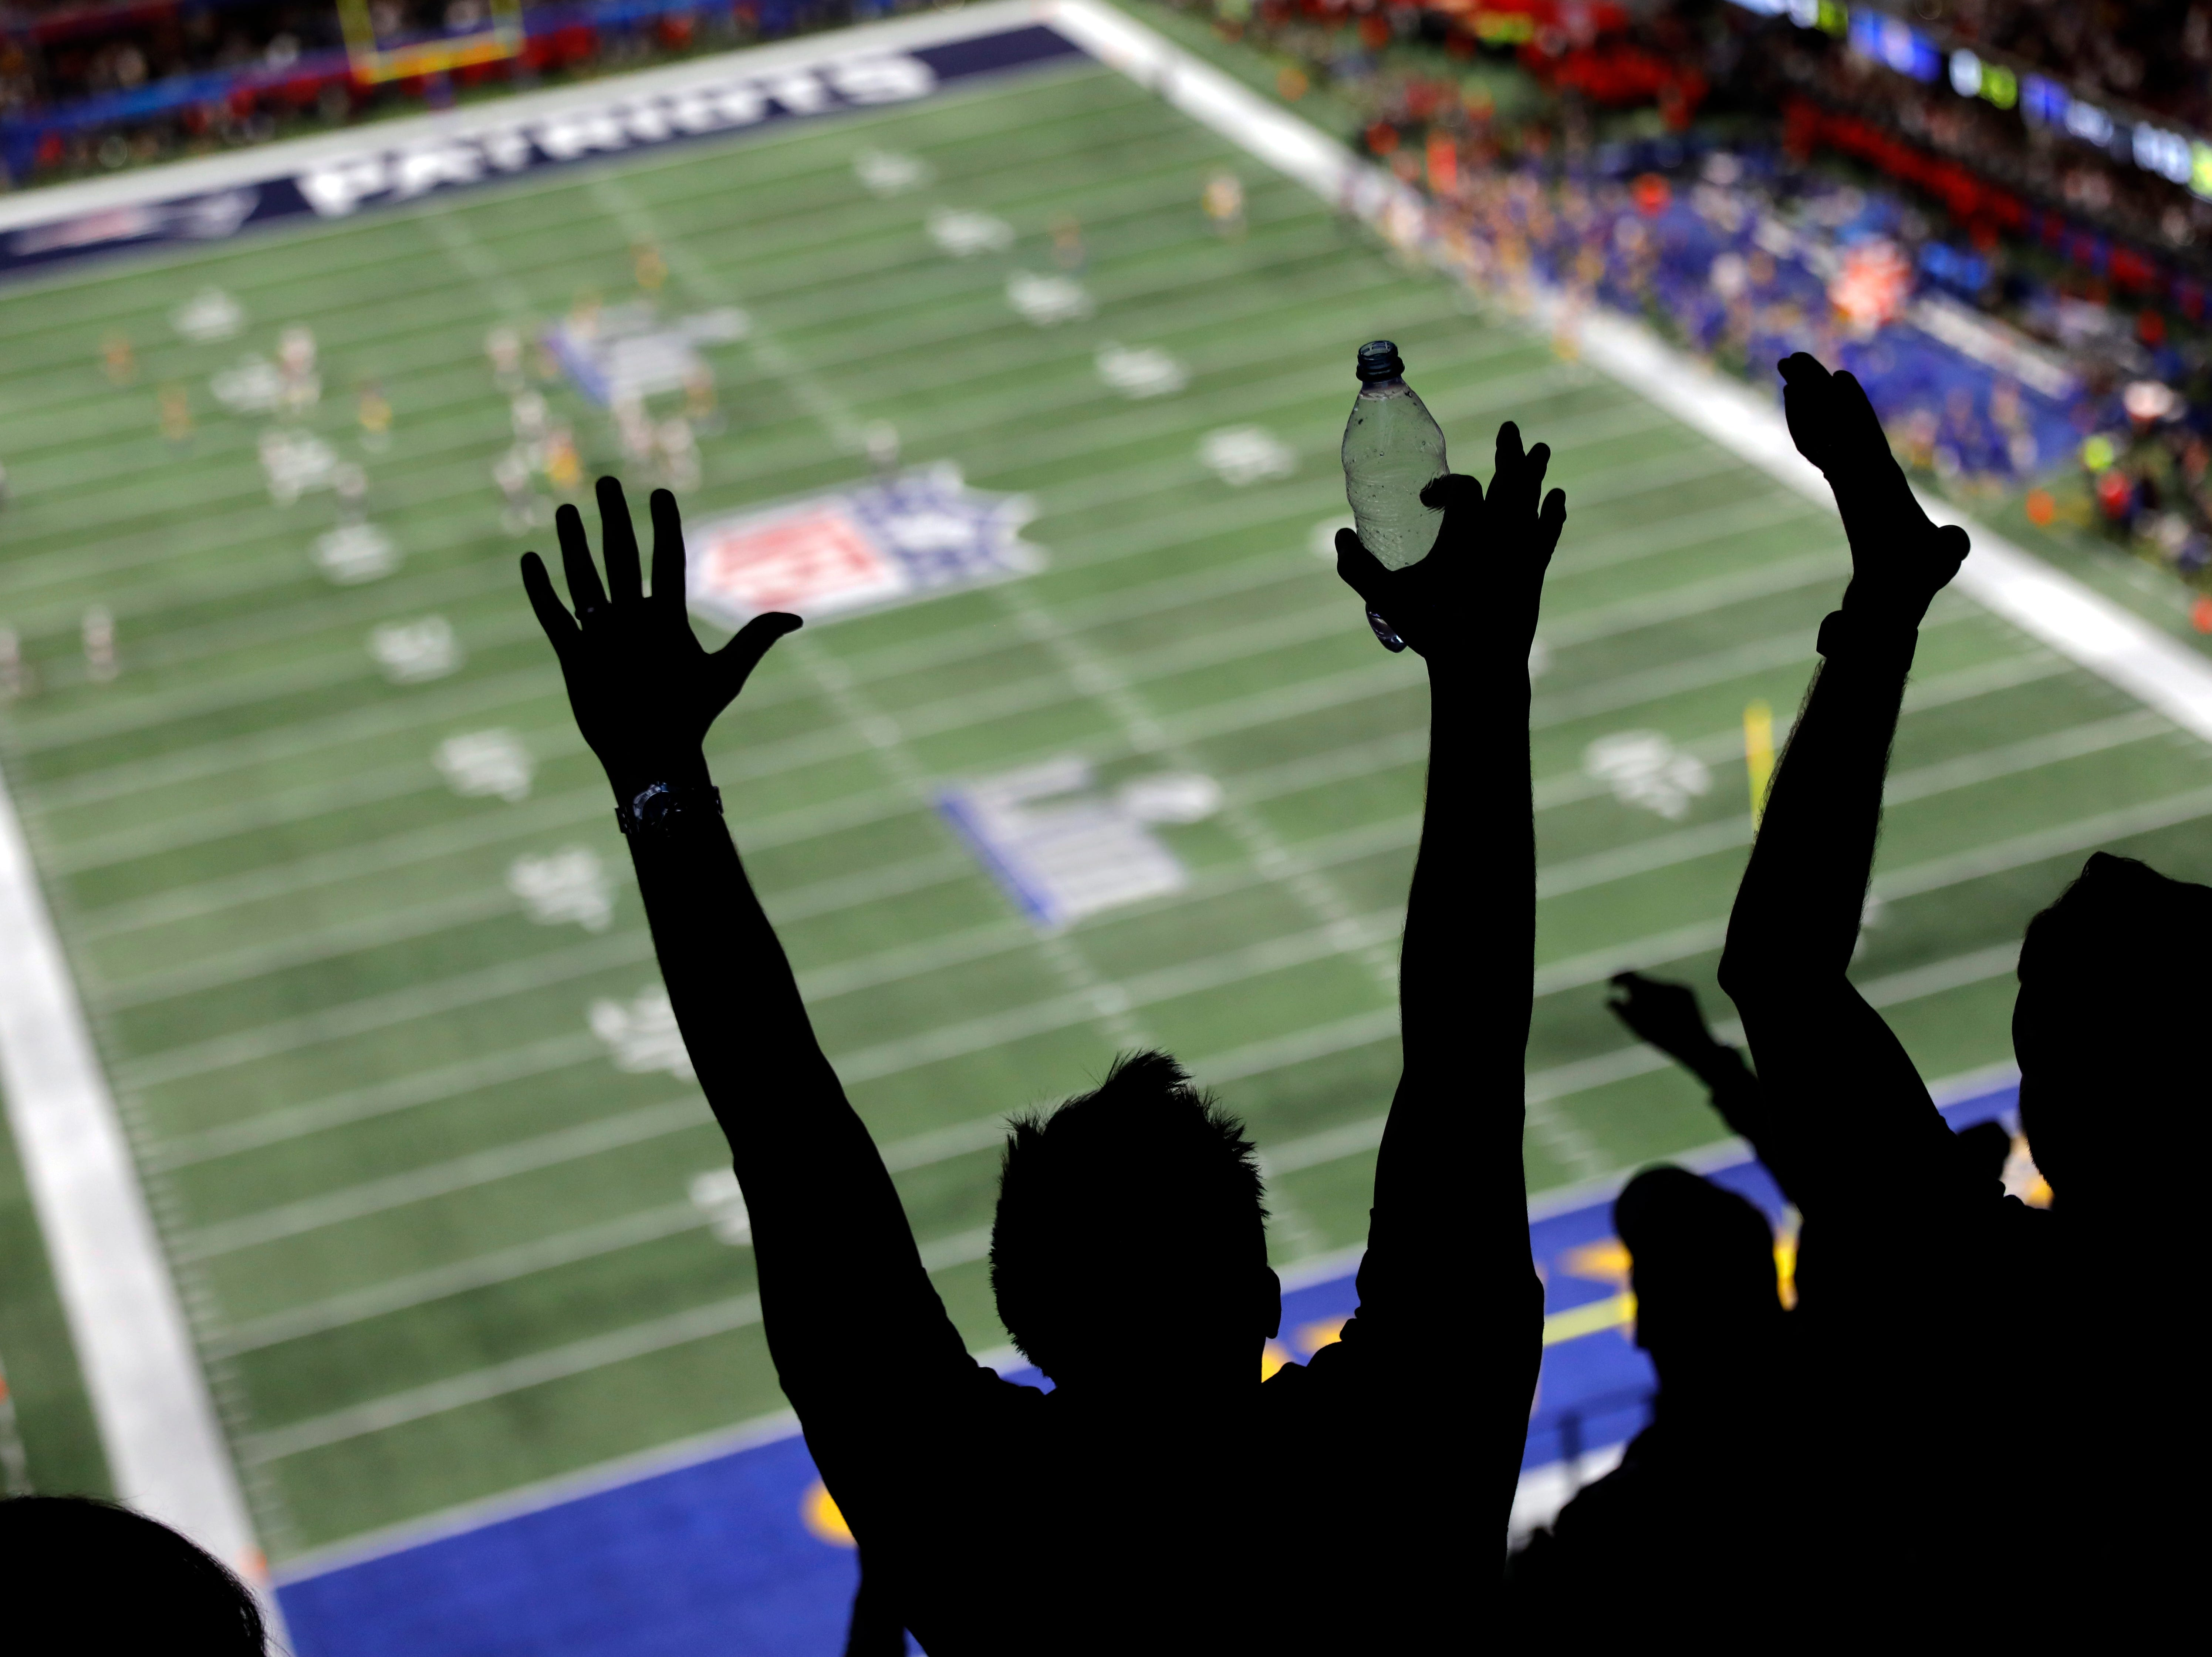 Los Angeles Rams fans celebrate after the New England Patriots fail to convert on a fourth-and-one play in the first half.